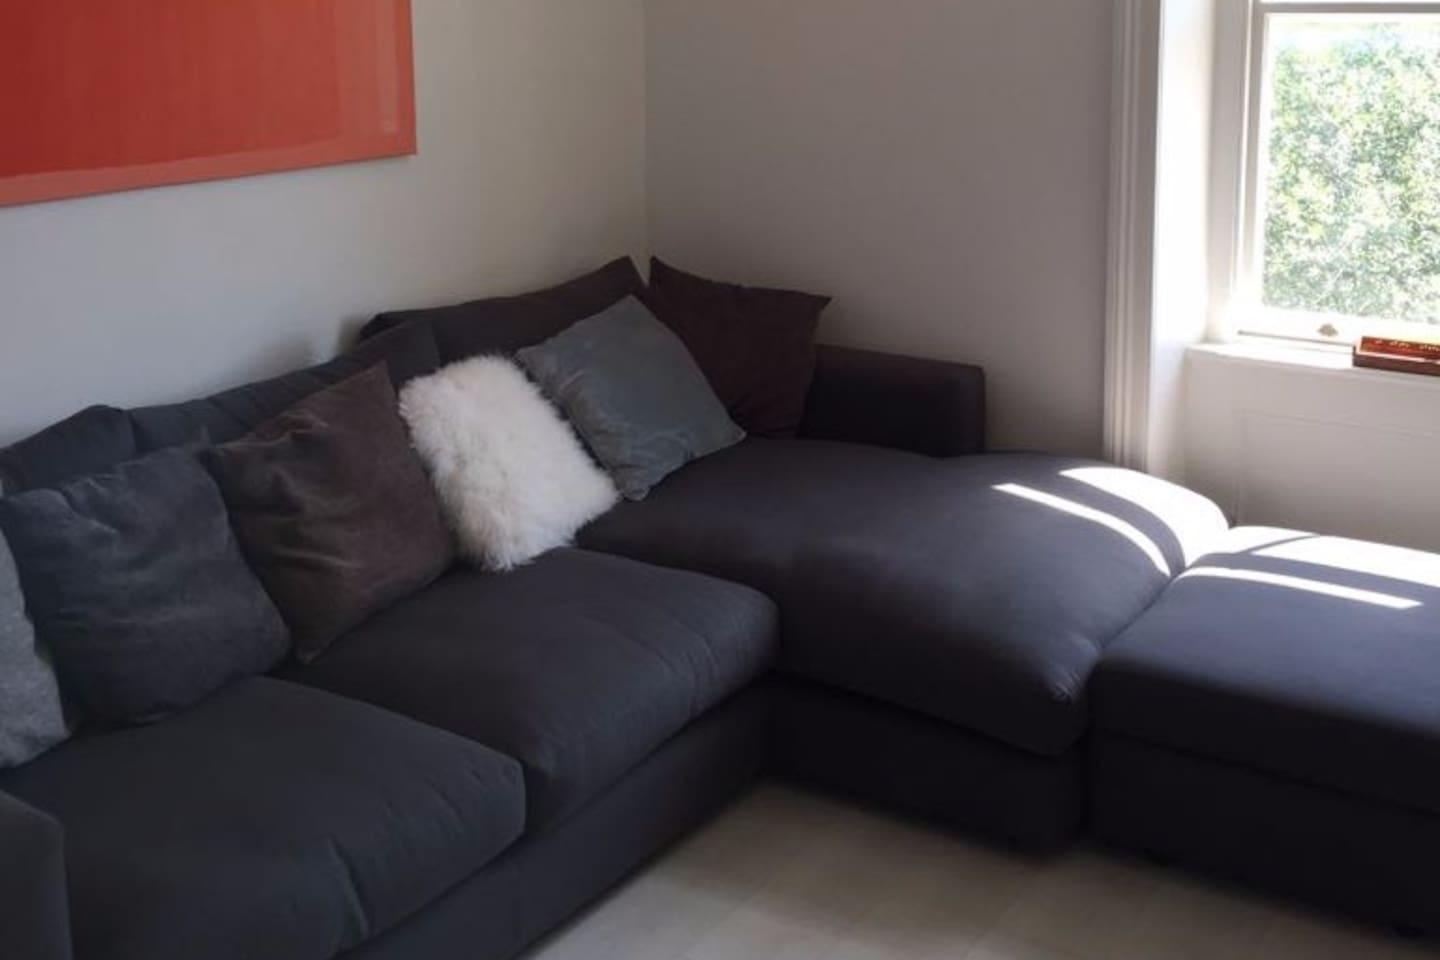 Lovely comfortable sofa to make your stay wonderful